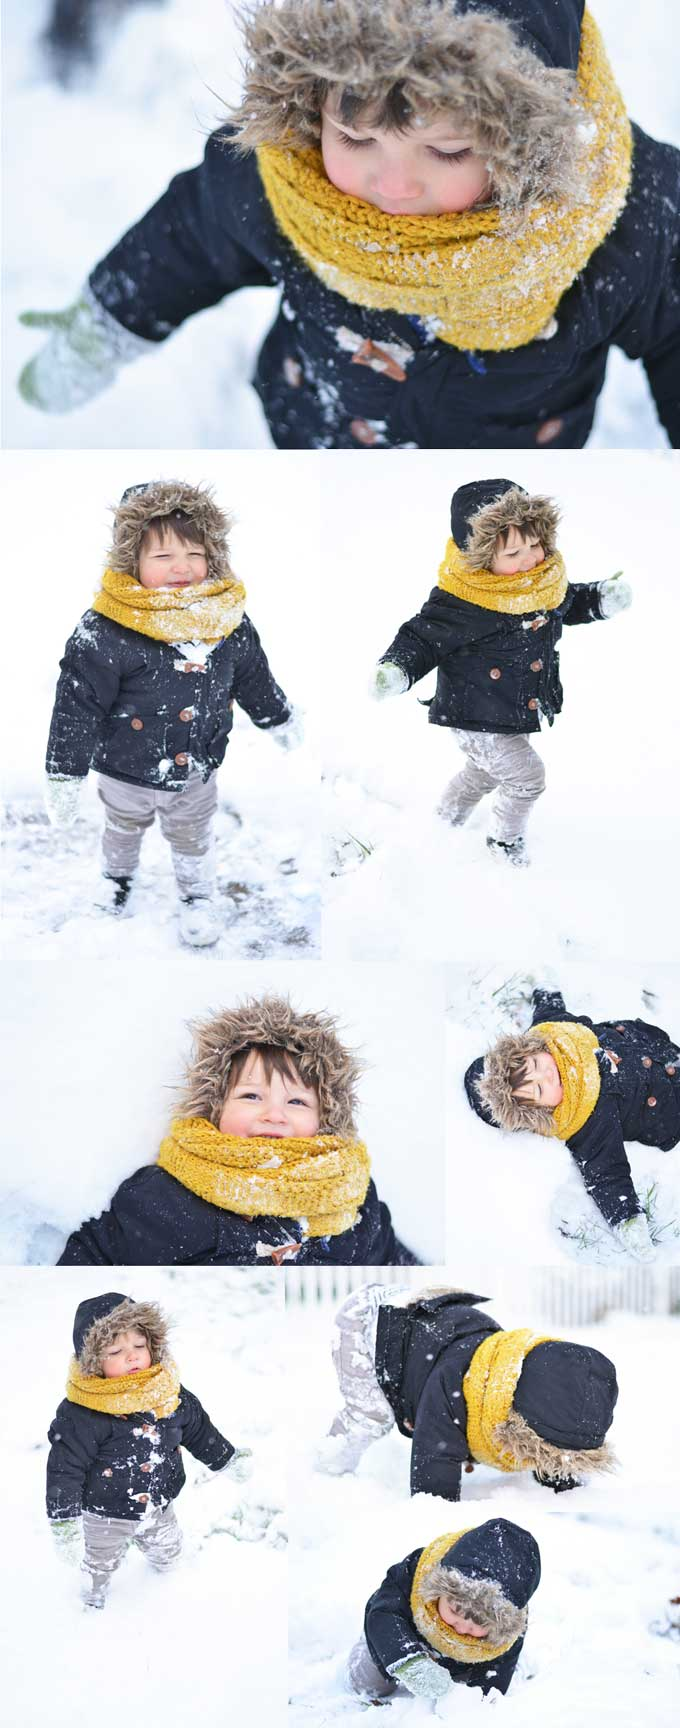 snow-toddler